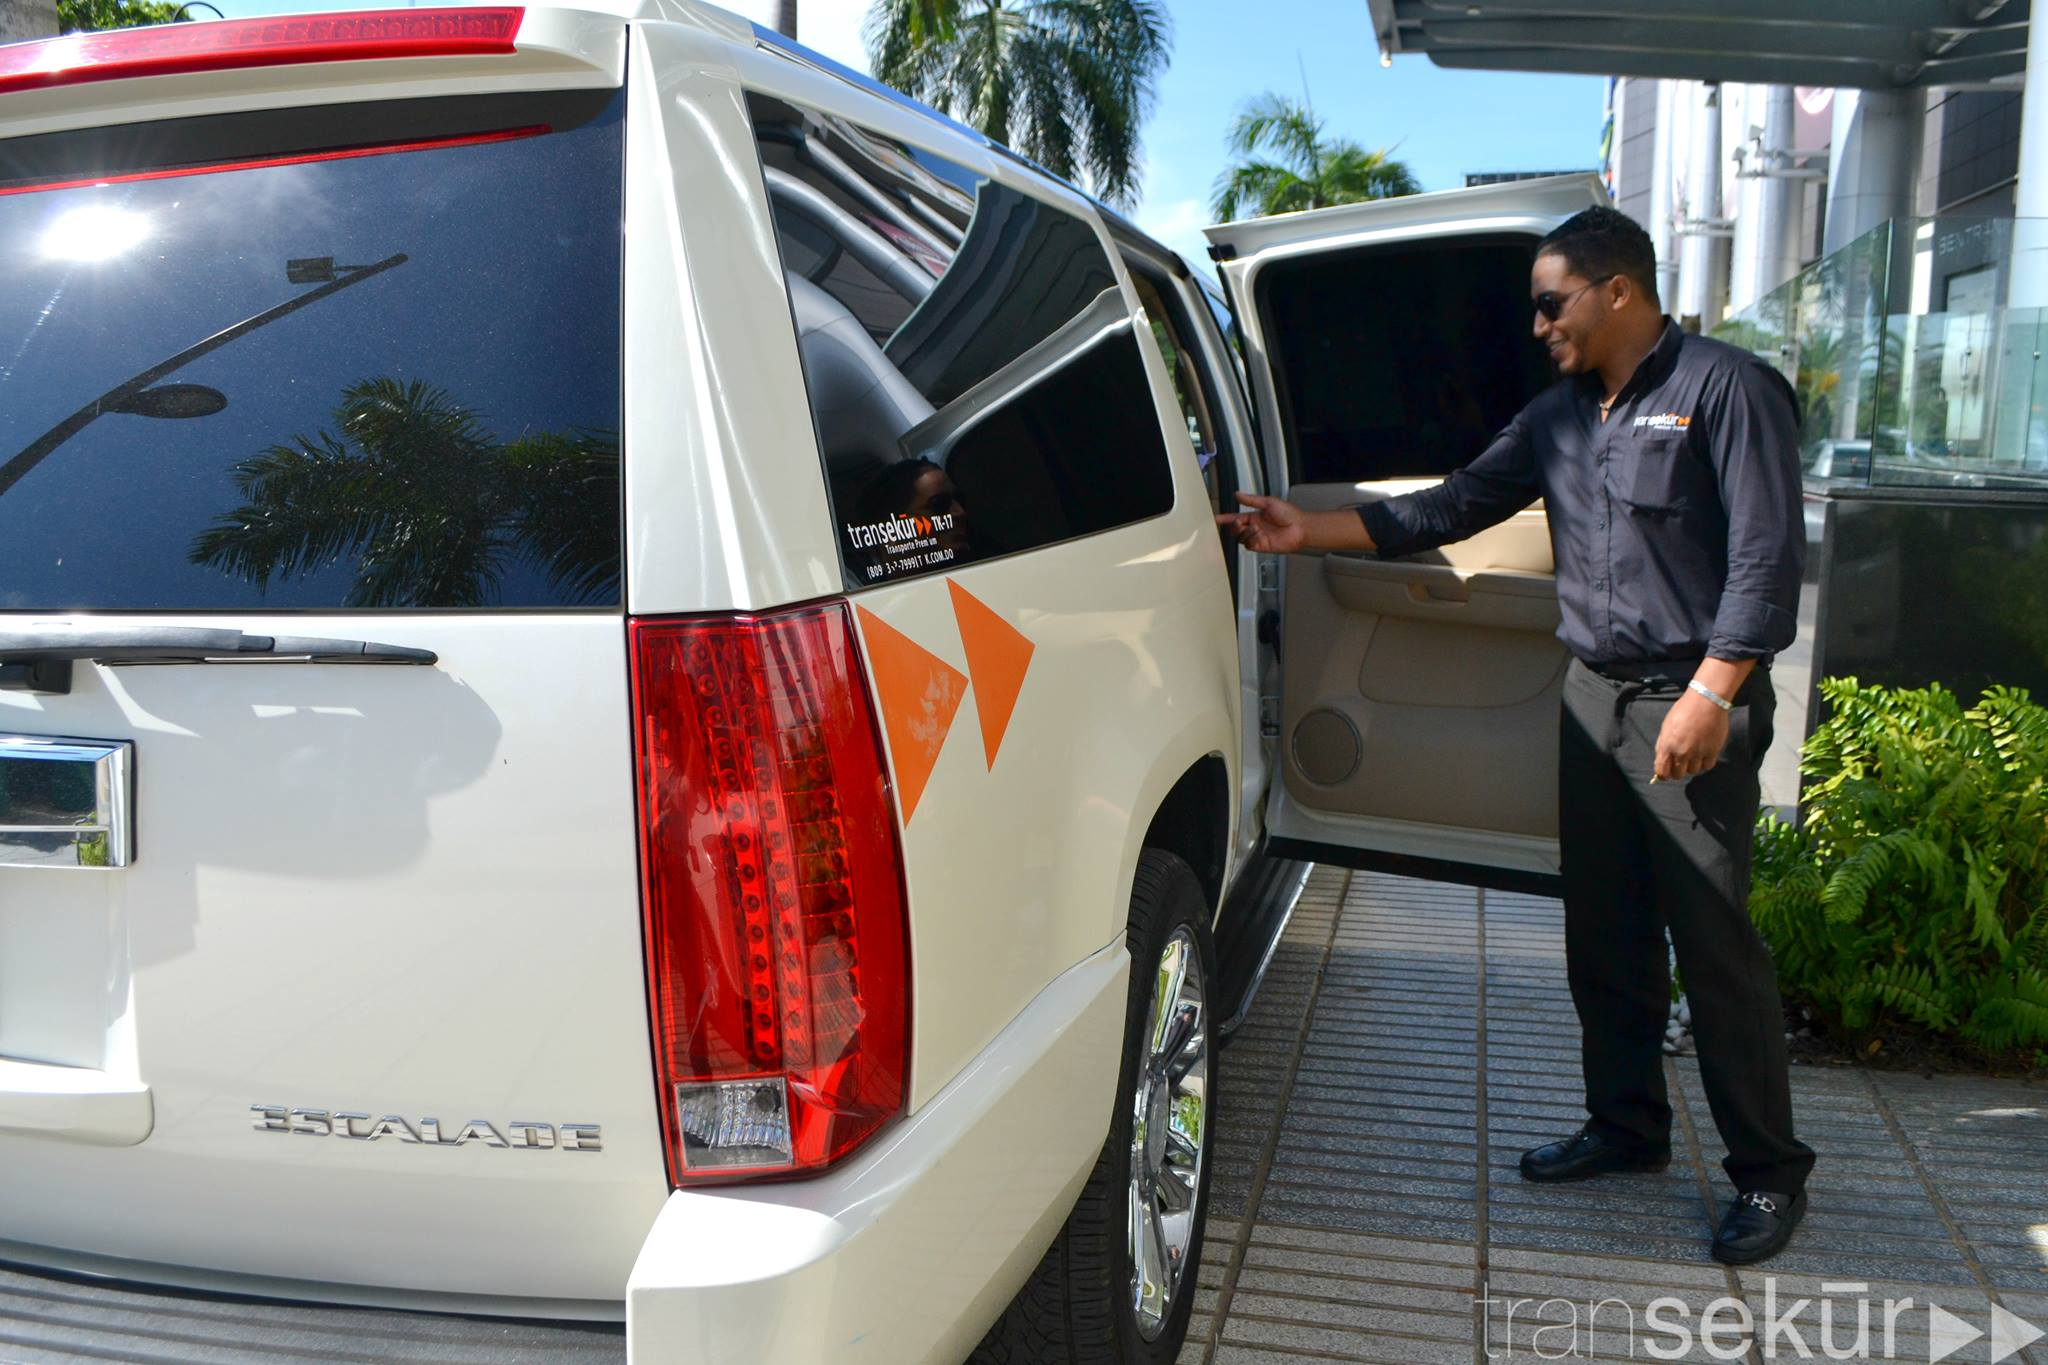 Luxury taxi in Dominican Republic Transekur